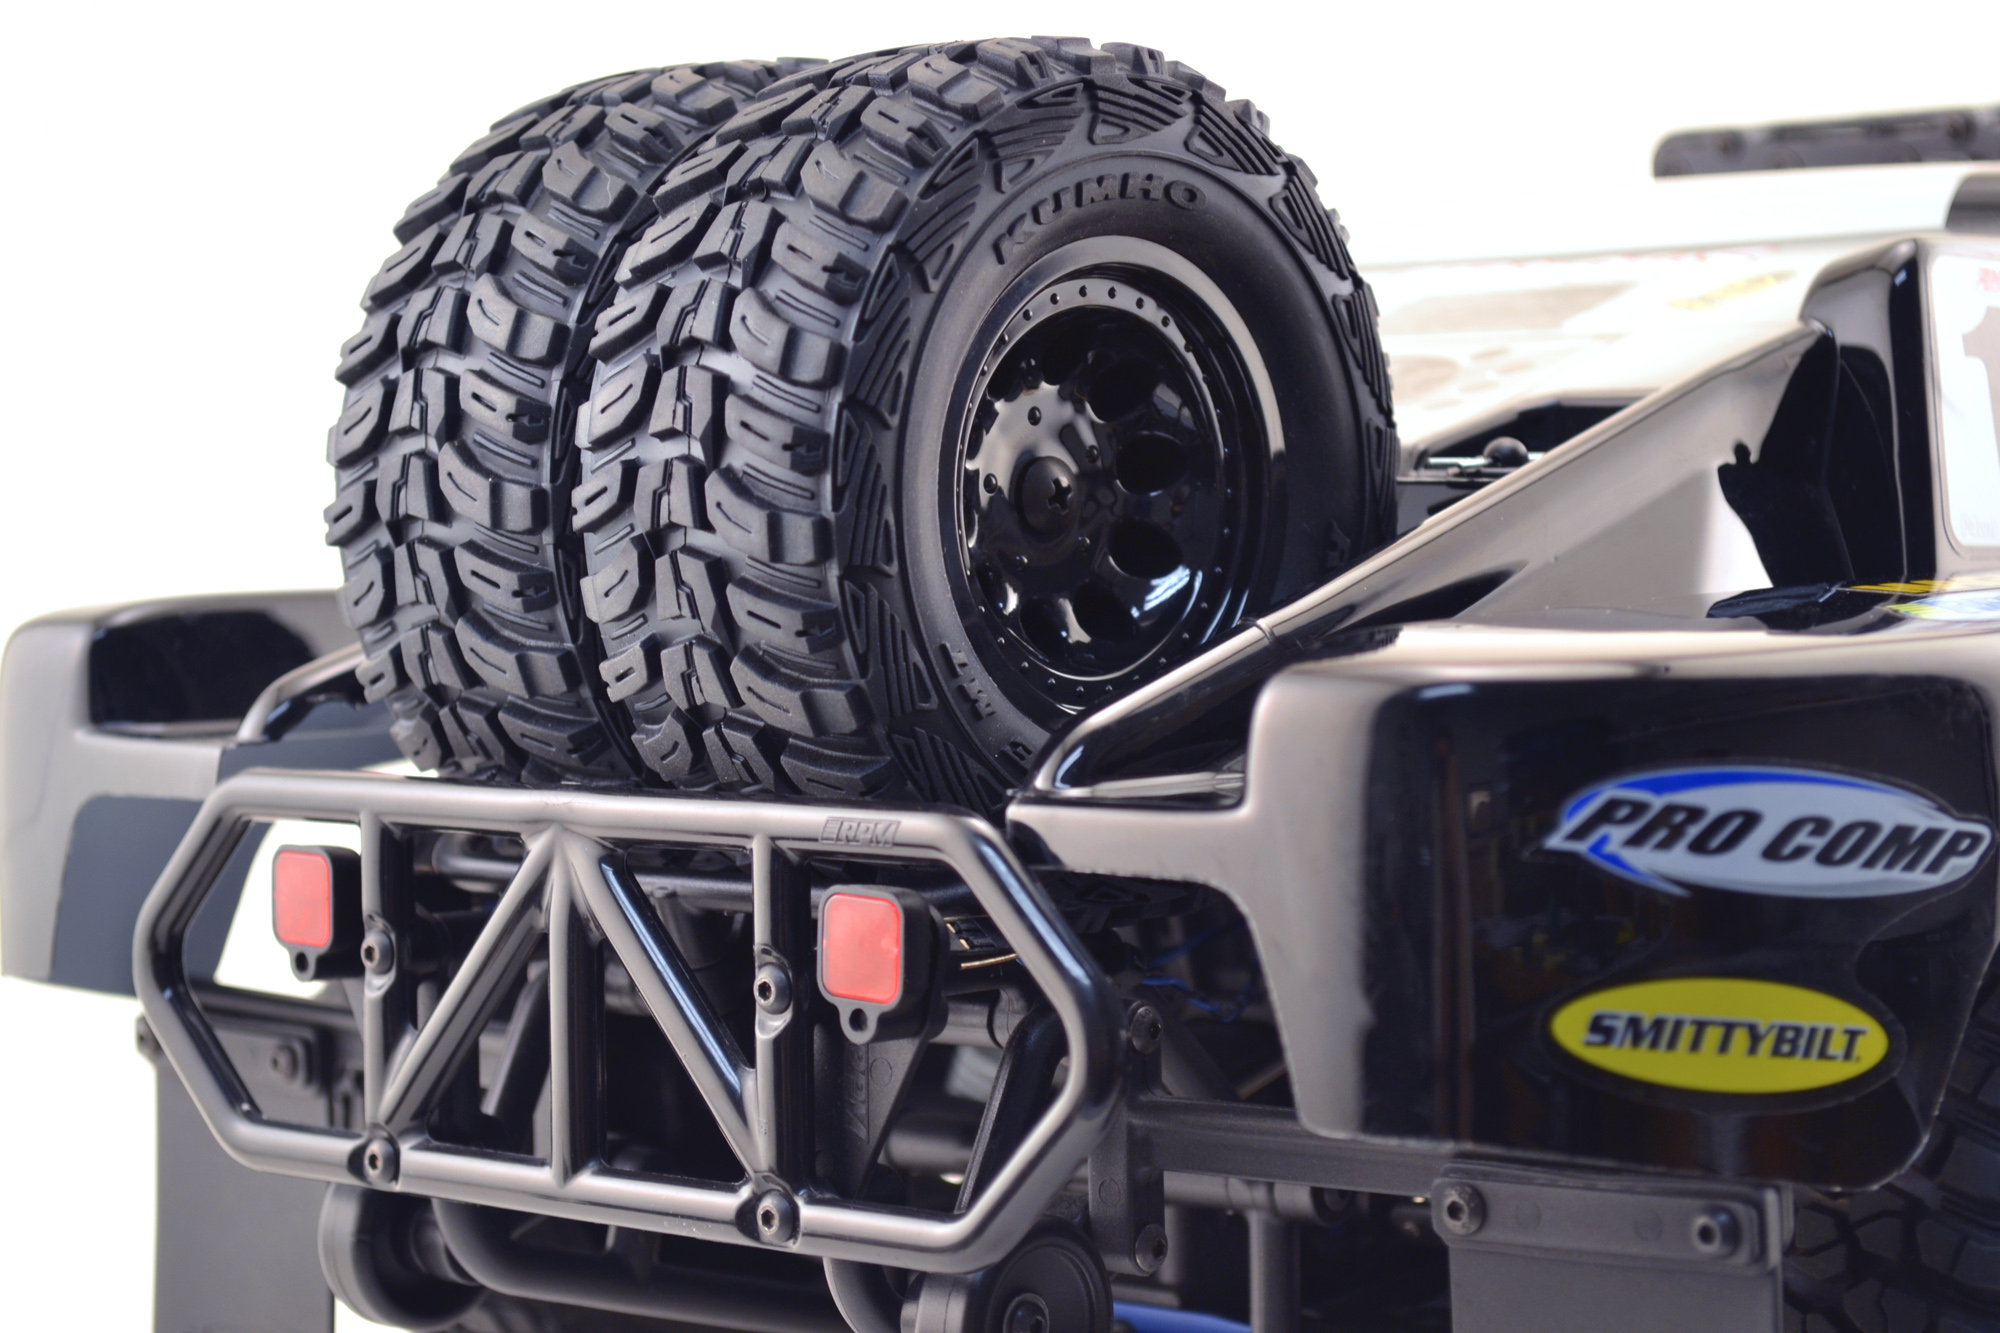 Dual Tire Spare Tire Carrier for the Traxxas Slash 2wd